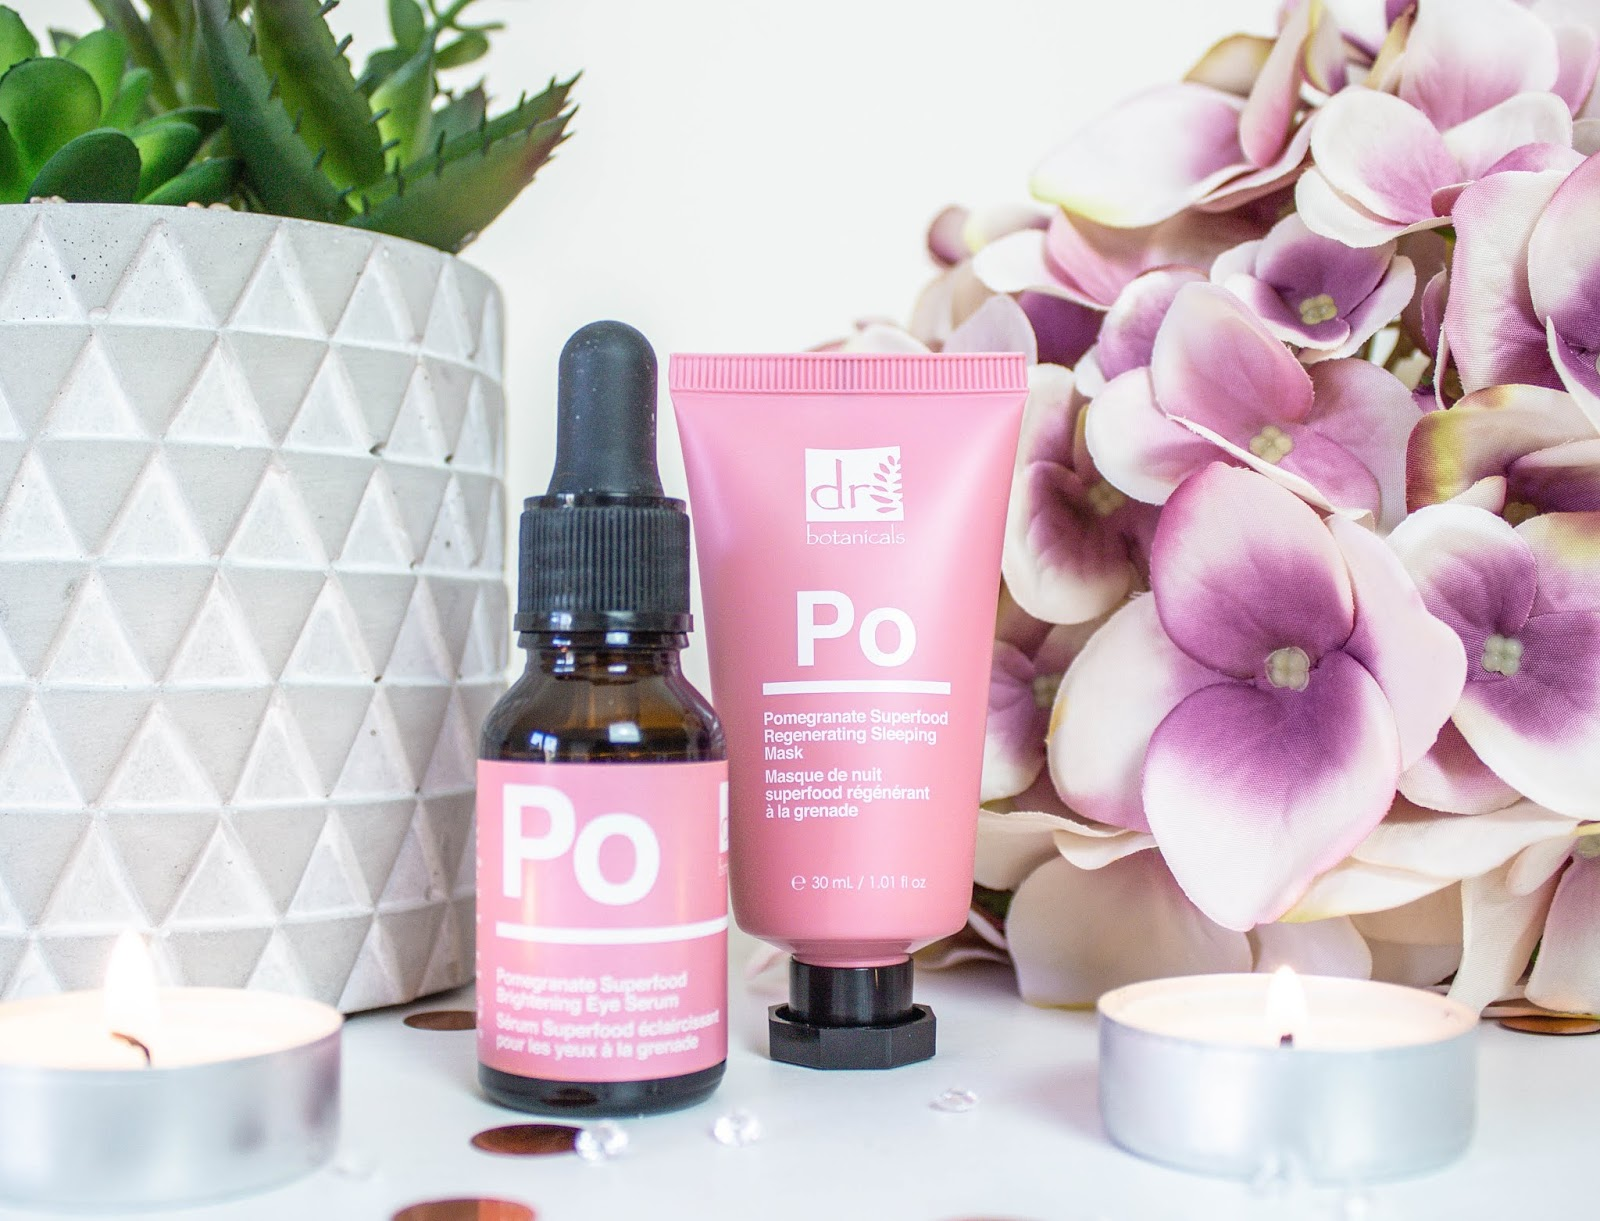 Harness The Power Of Superfoods: Pomegranate Skincare From Dr Botanicals + Discount Code (AD)